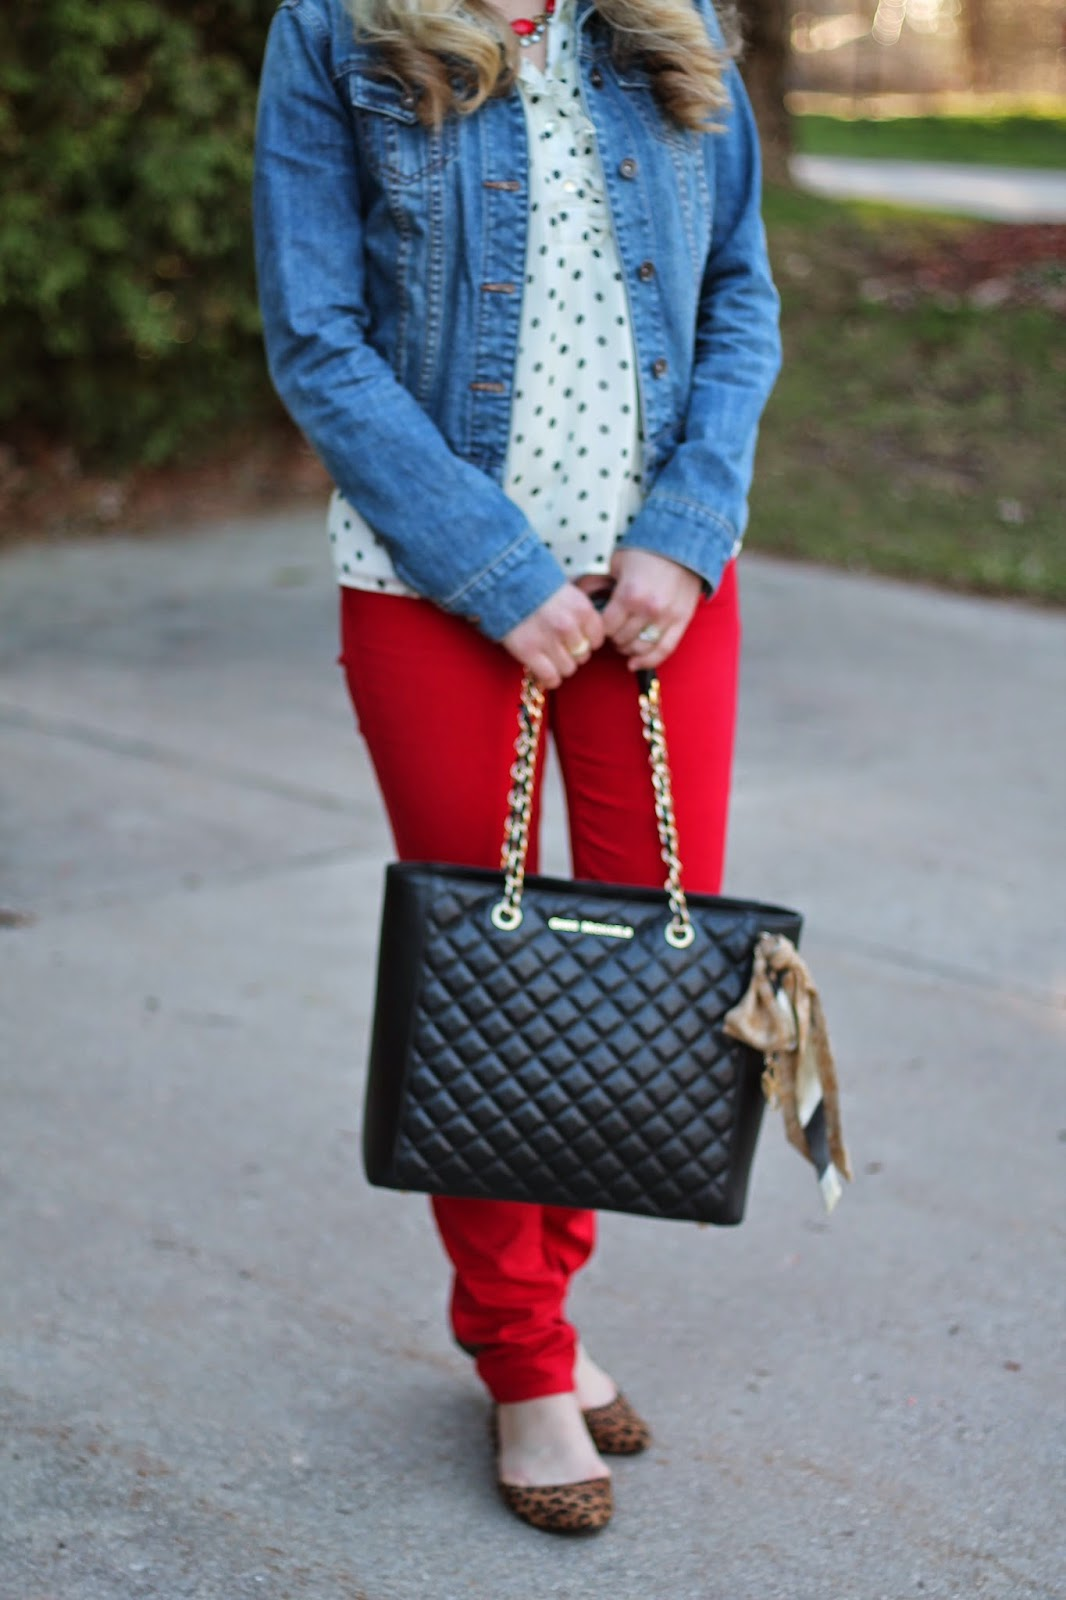 I do declaire red jeans and polka dot top red jeans polka dot top denim jacket leopard flats sisterspd